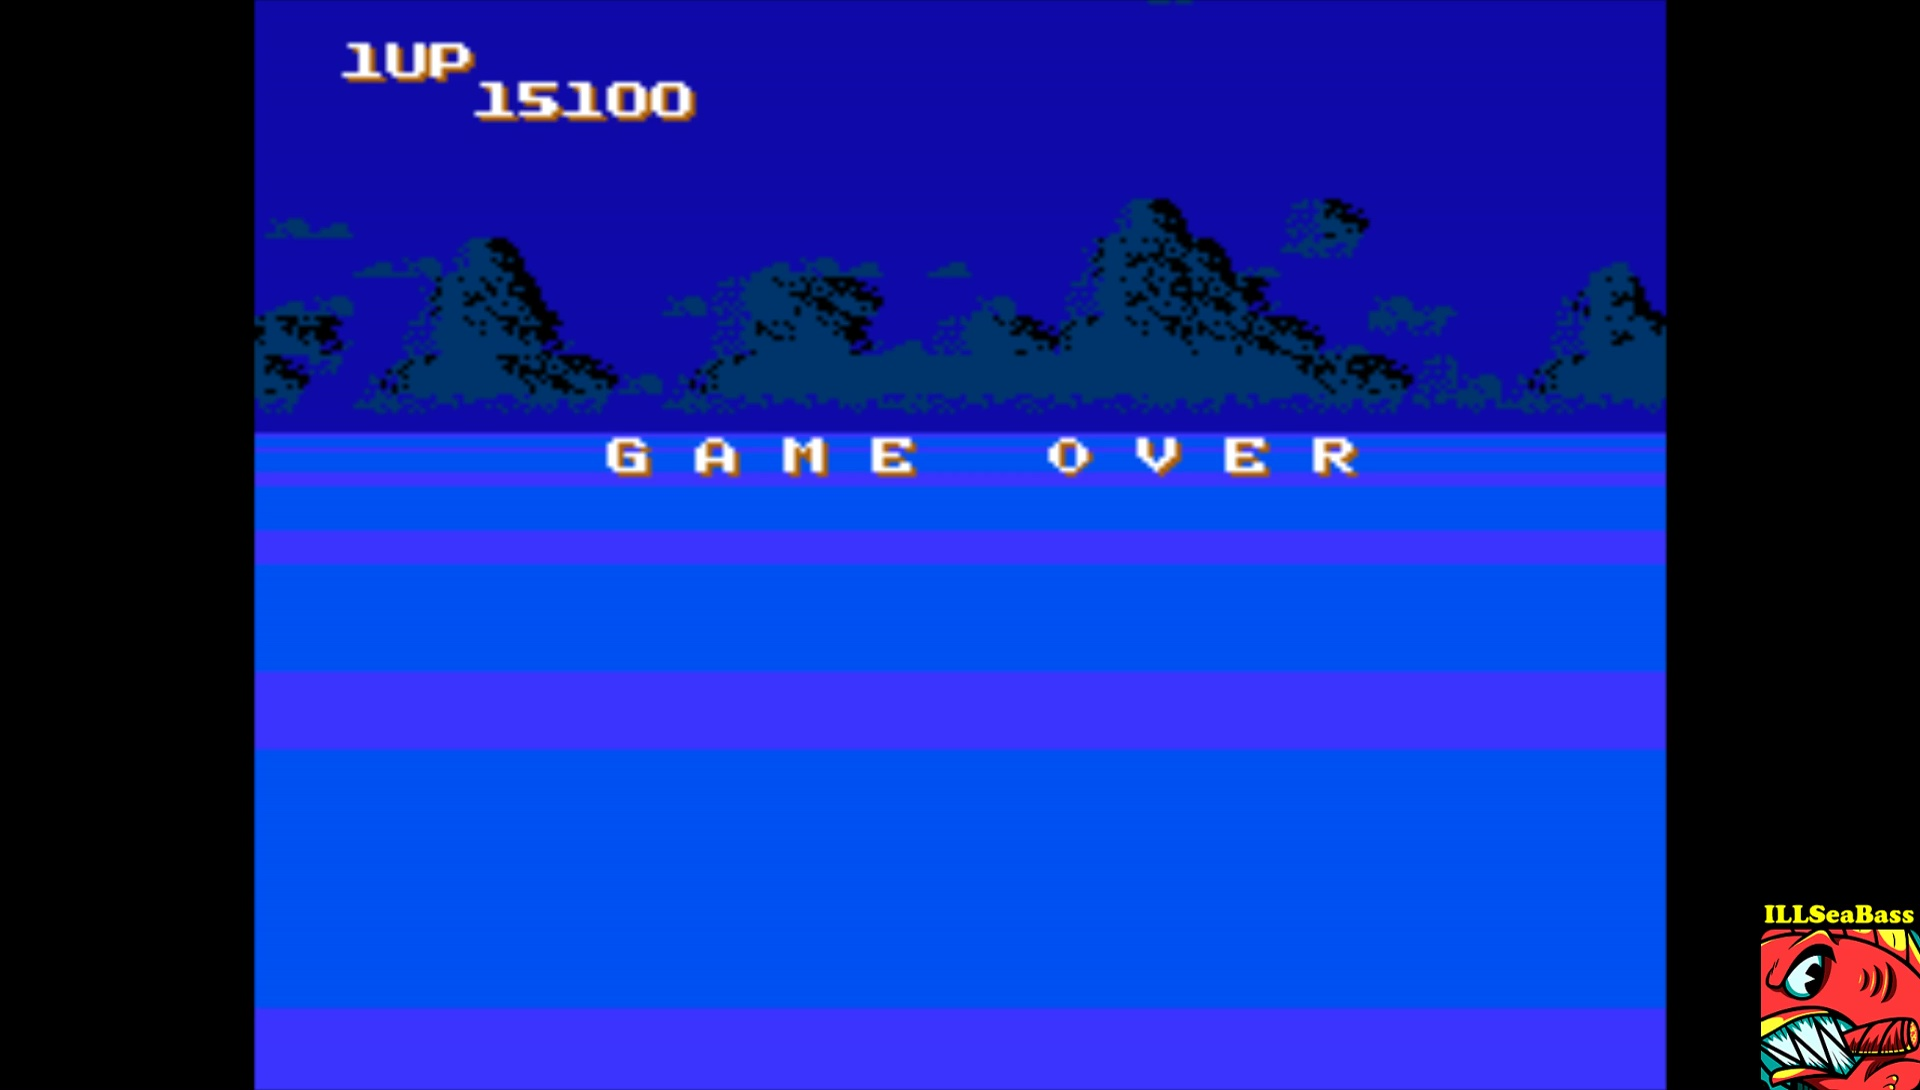 ILLSeaBass: Sky Destroyer (NES/Famicom Emulated) 15,100 points on 2017-07-09 01:14:23